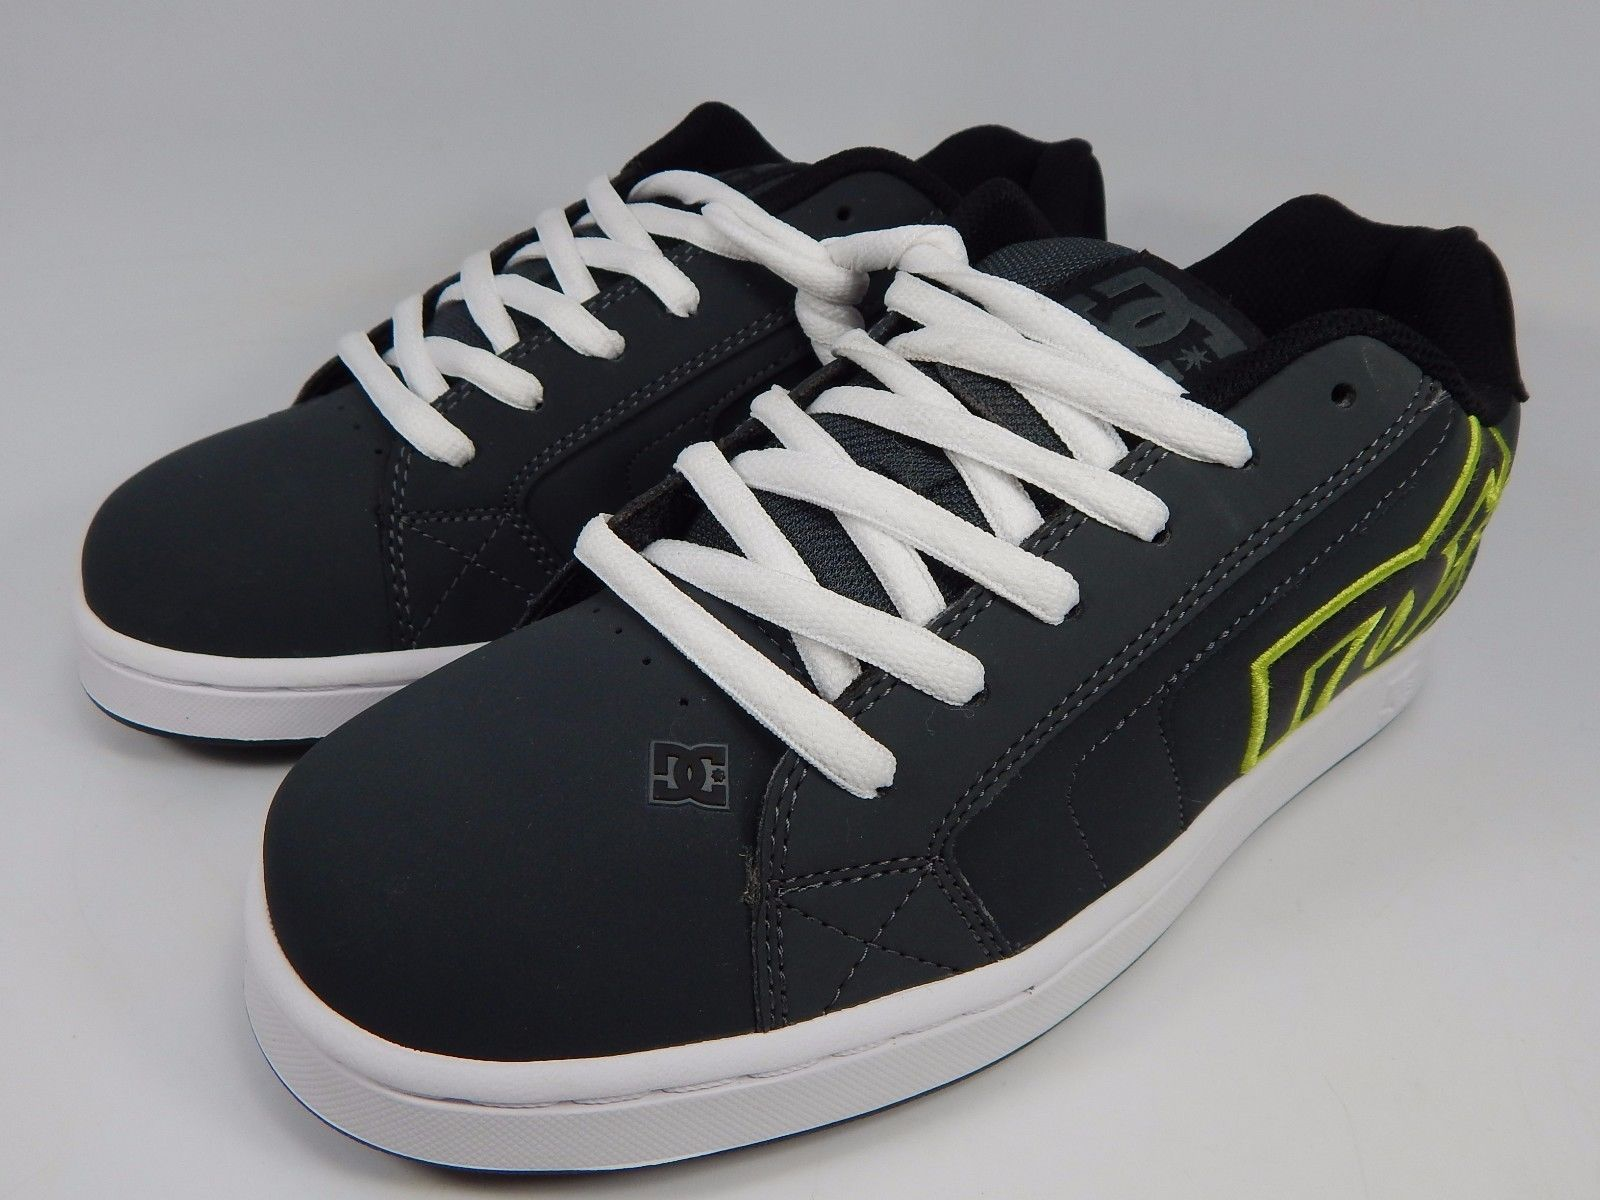 DC Net Leather Men's Skate Shoes Size US 8 M (D) EU 40.5 Gray Black White Lace